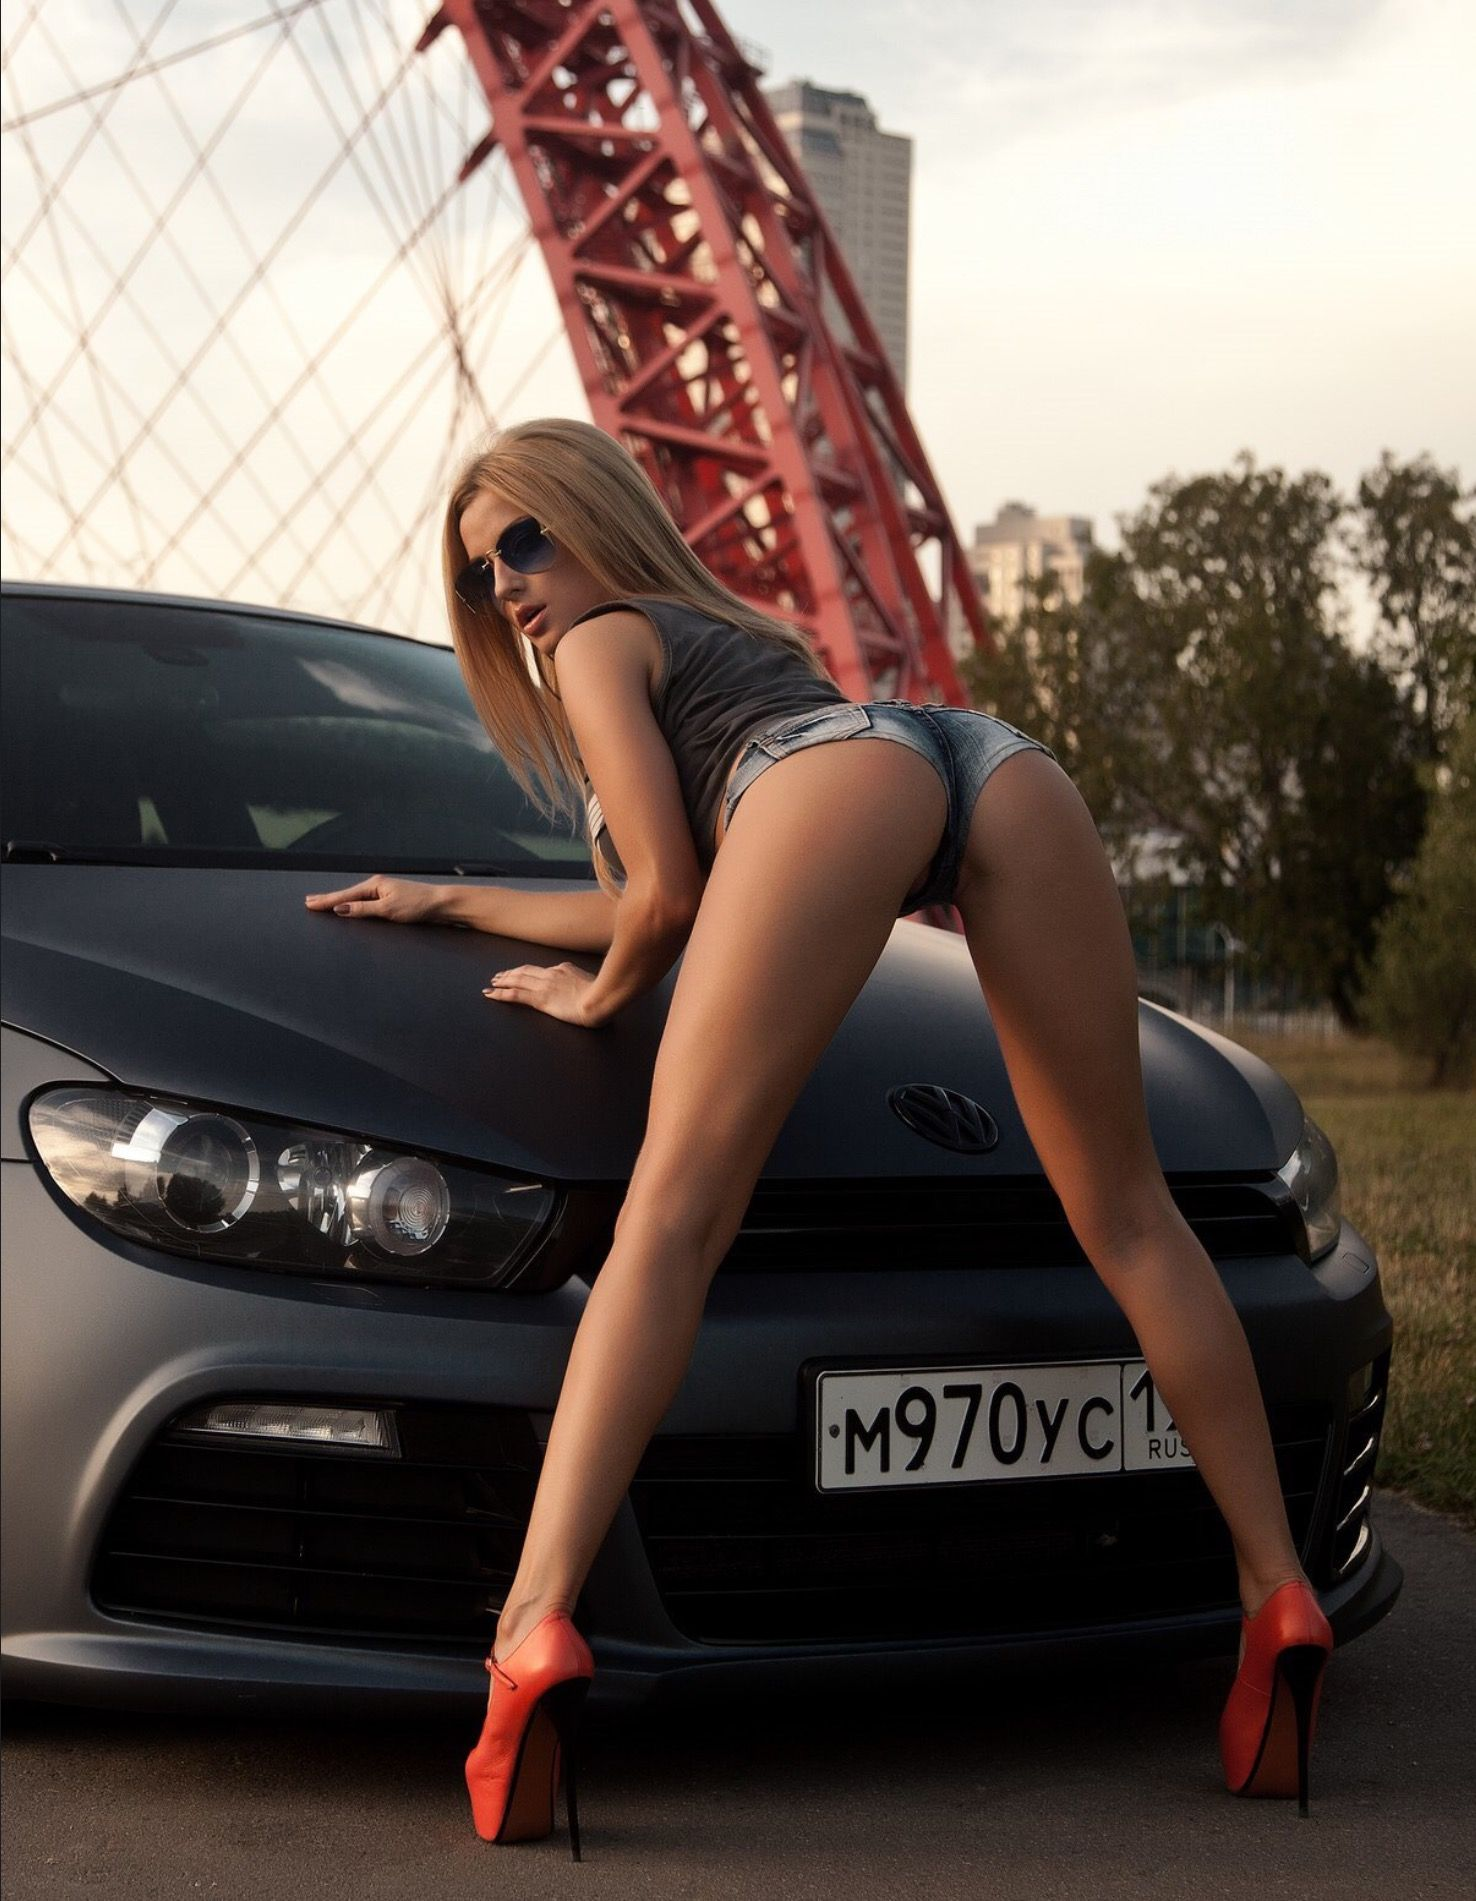 women bending over car